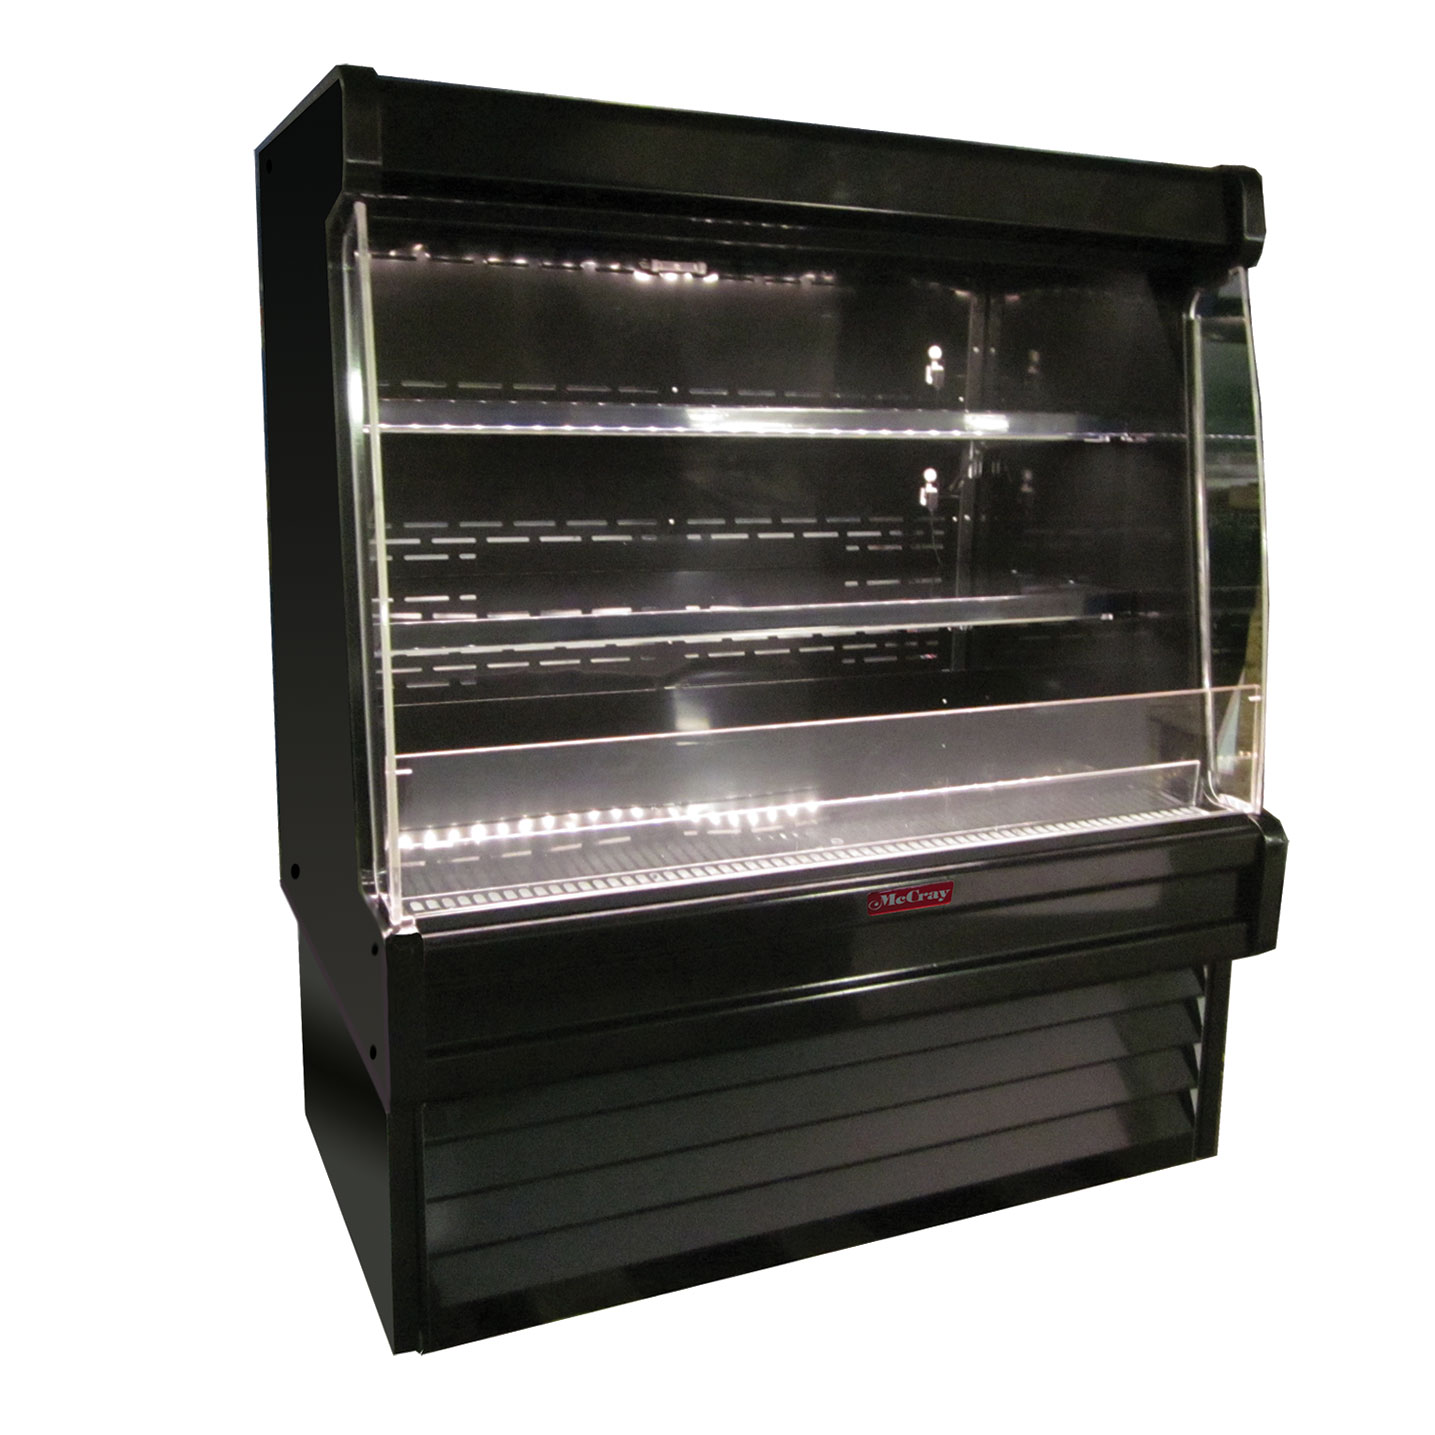 Howard-McCray SC-OP35E-4L-LED display case, produce